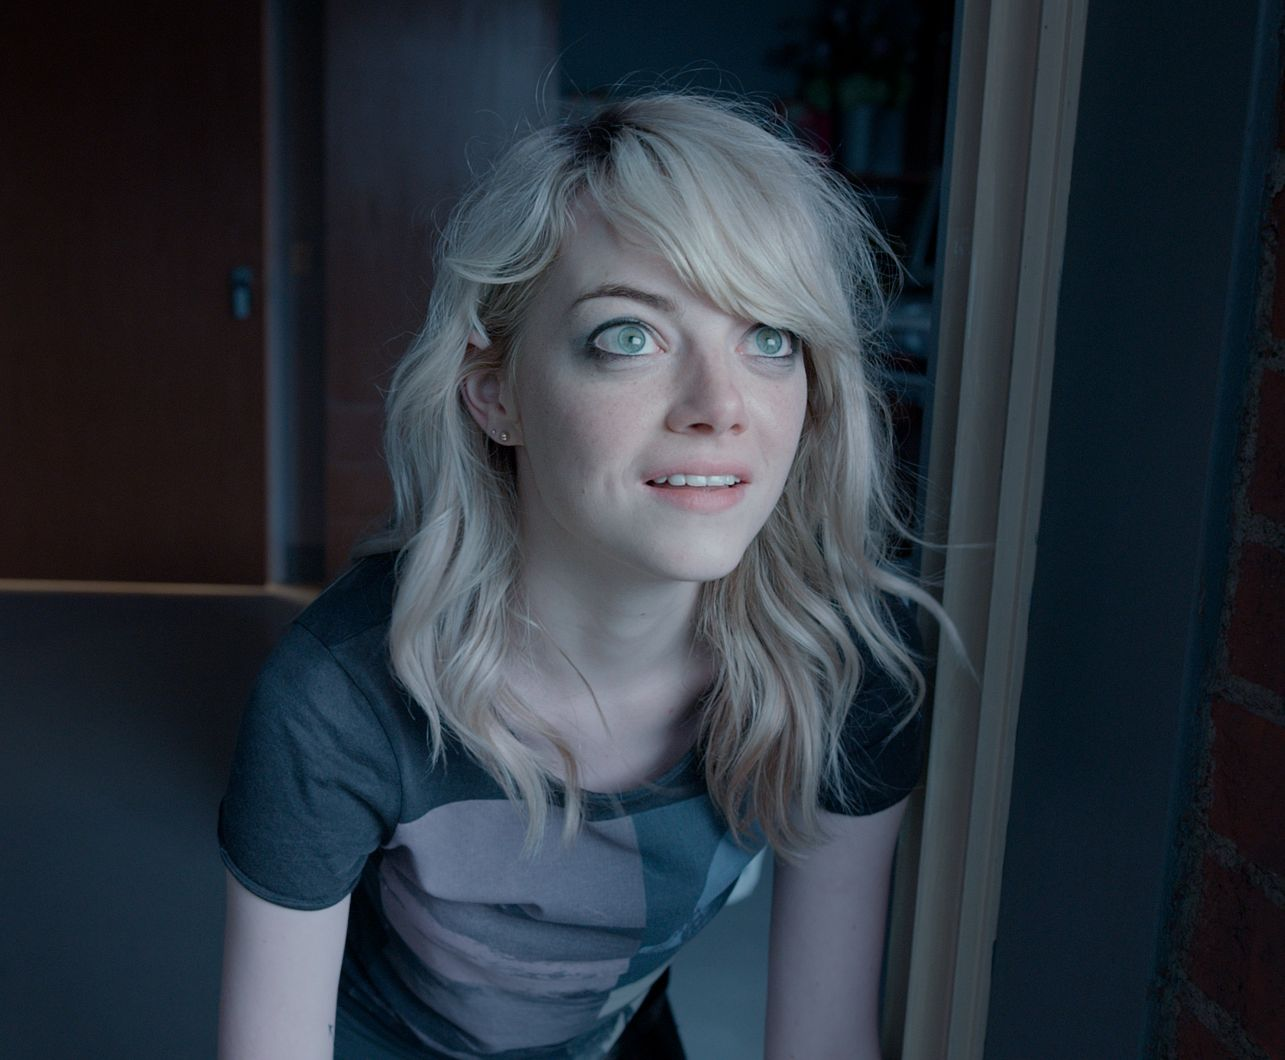 Emma Stone with extremely green eyes in Birdman